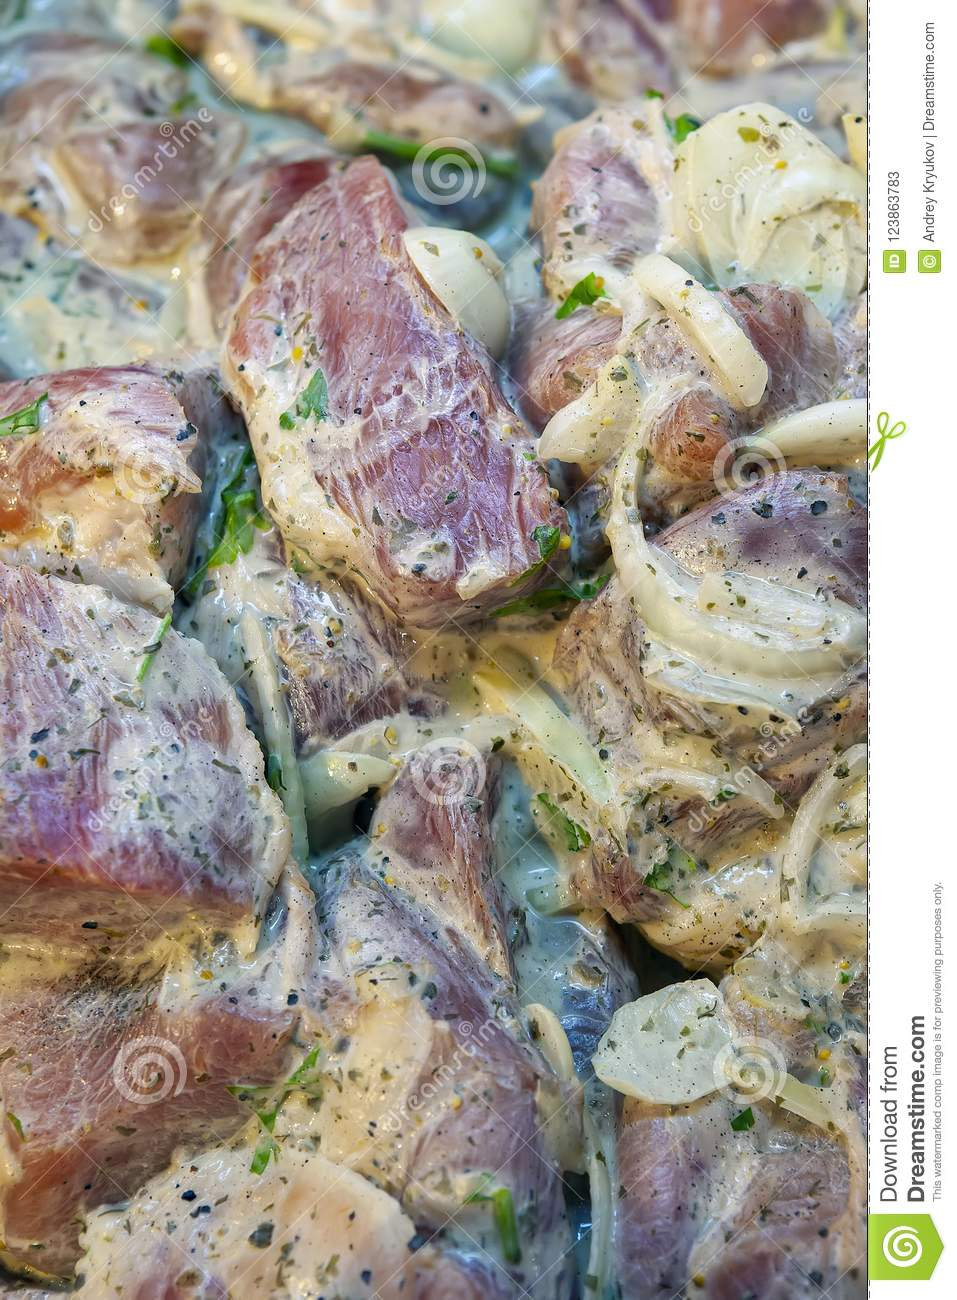 How to pickle meat for kebabs Meat for kebabs: marinade, recipe, photo 93